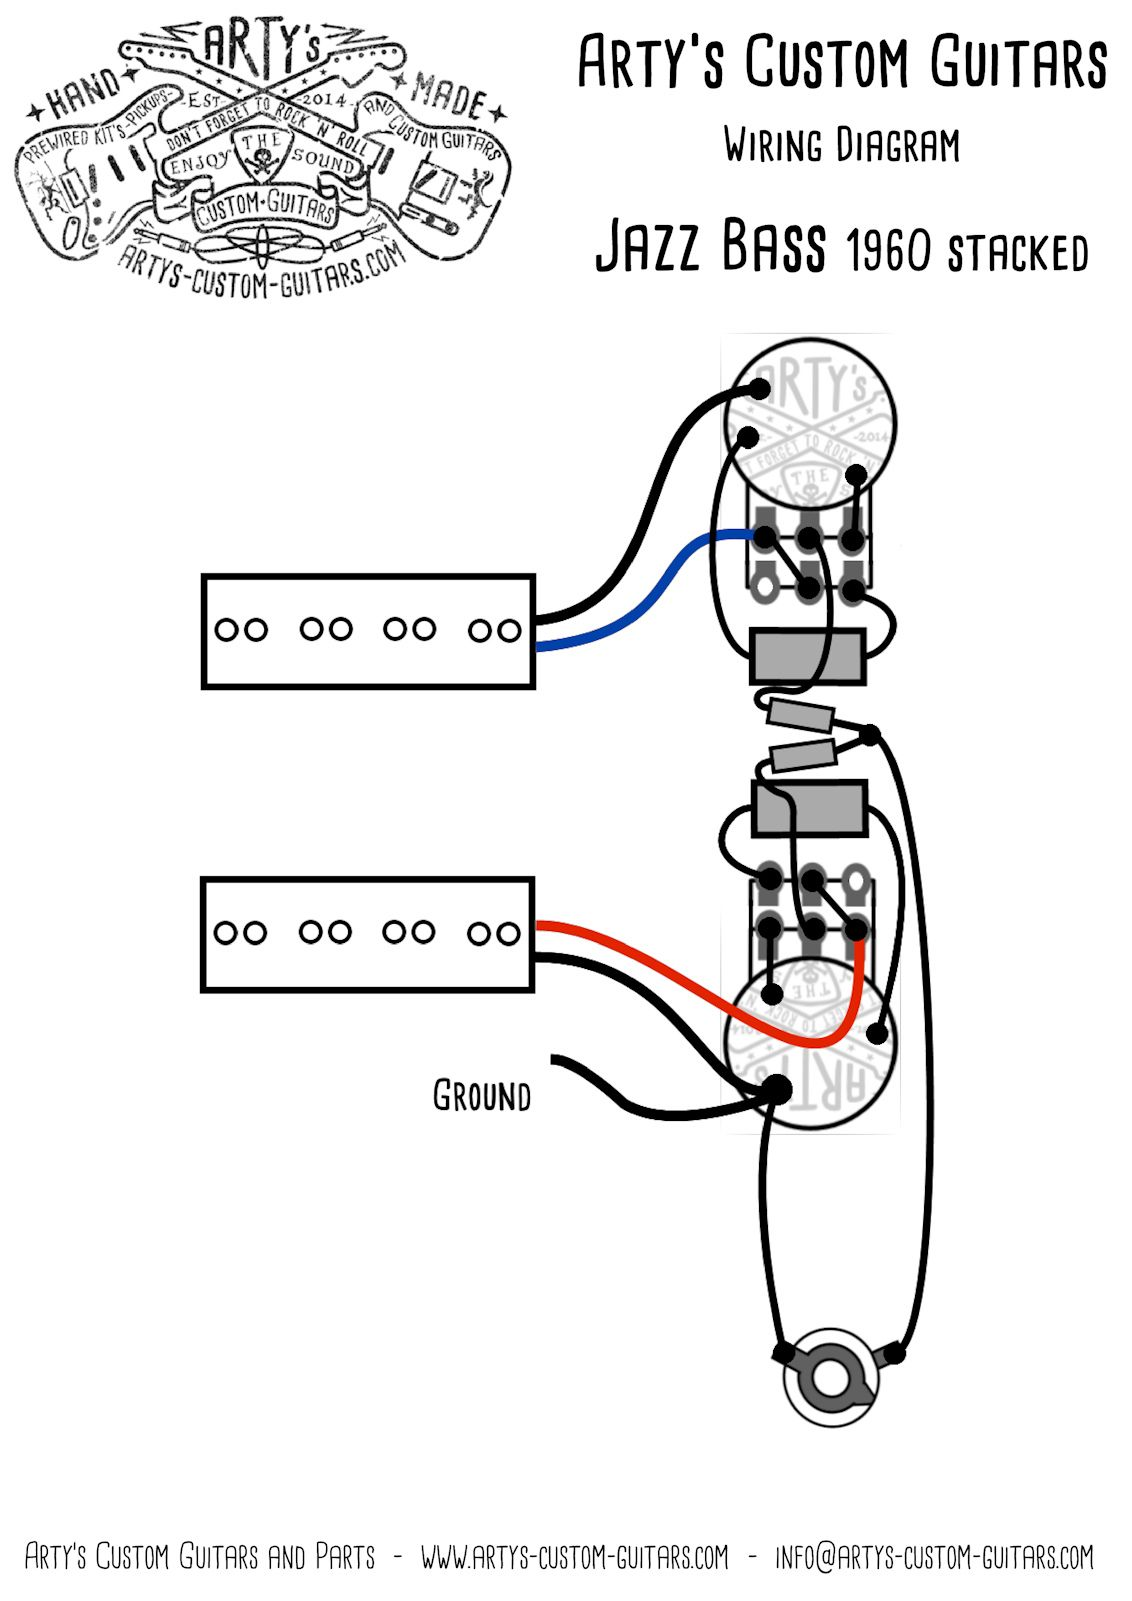 arty s custom guitars vintage pre wired prewired kit wiring assembly harness arty jazz bass 1960 1962 stacked pots 3 hole j bass [ 1132 x 1601 Pixel ]